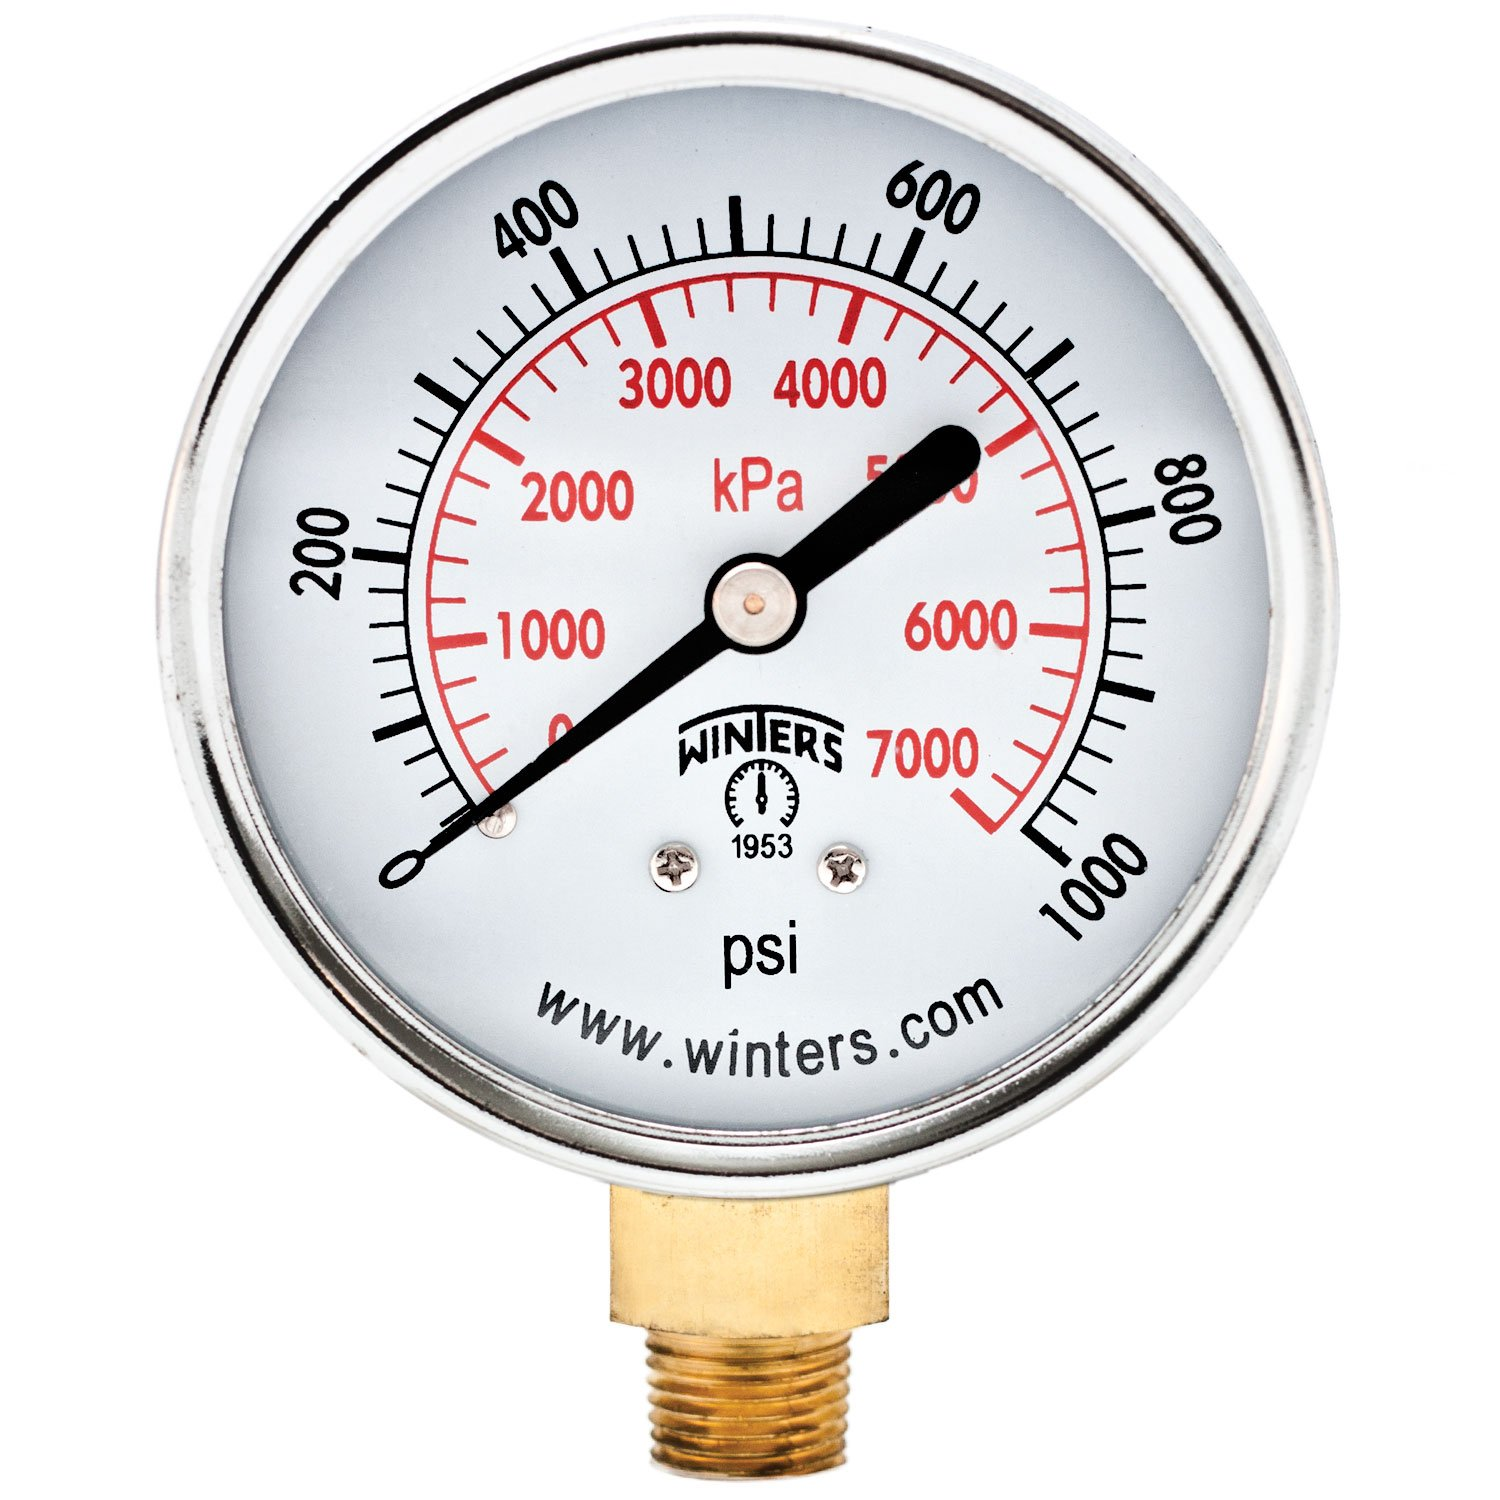 Winters PEM Series Steel Dual Scale Economical All Purpose Pressure Gauge with Brass Internals 0 1000 psi kpa 2 1 2 Dial Display 3 2 3% Accuracy 1 4 NPT Bottom Mount